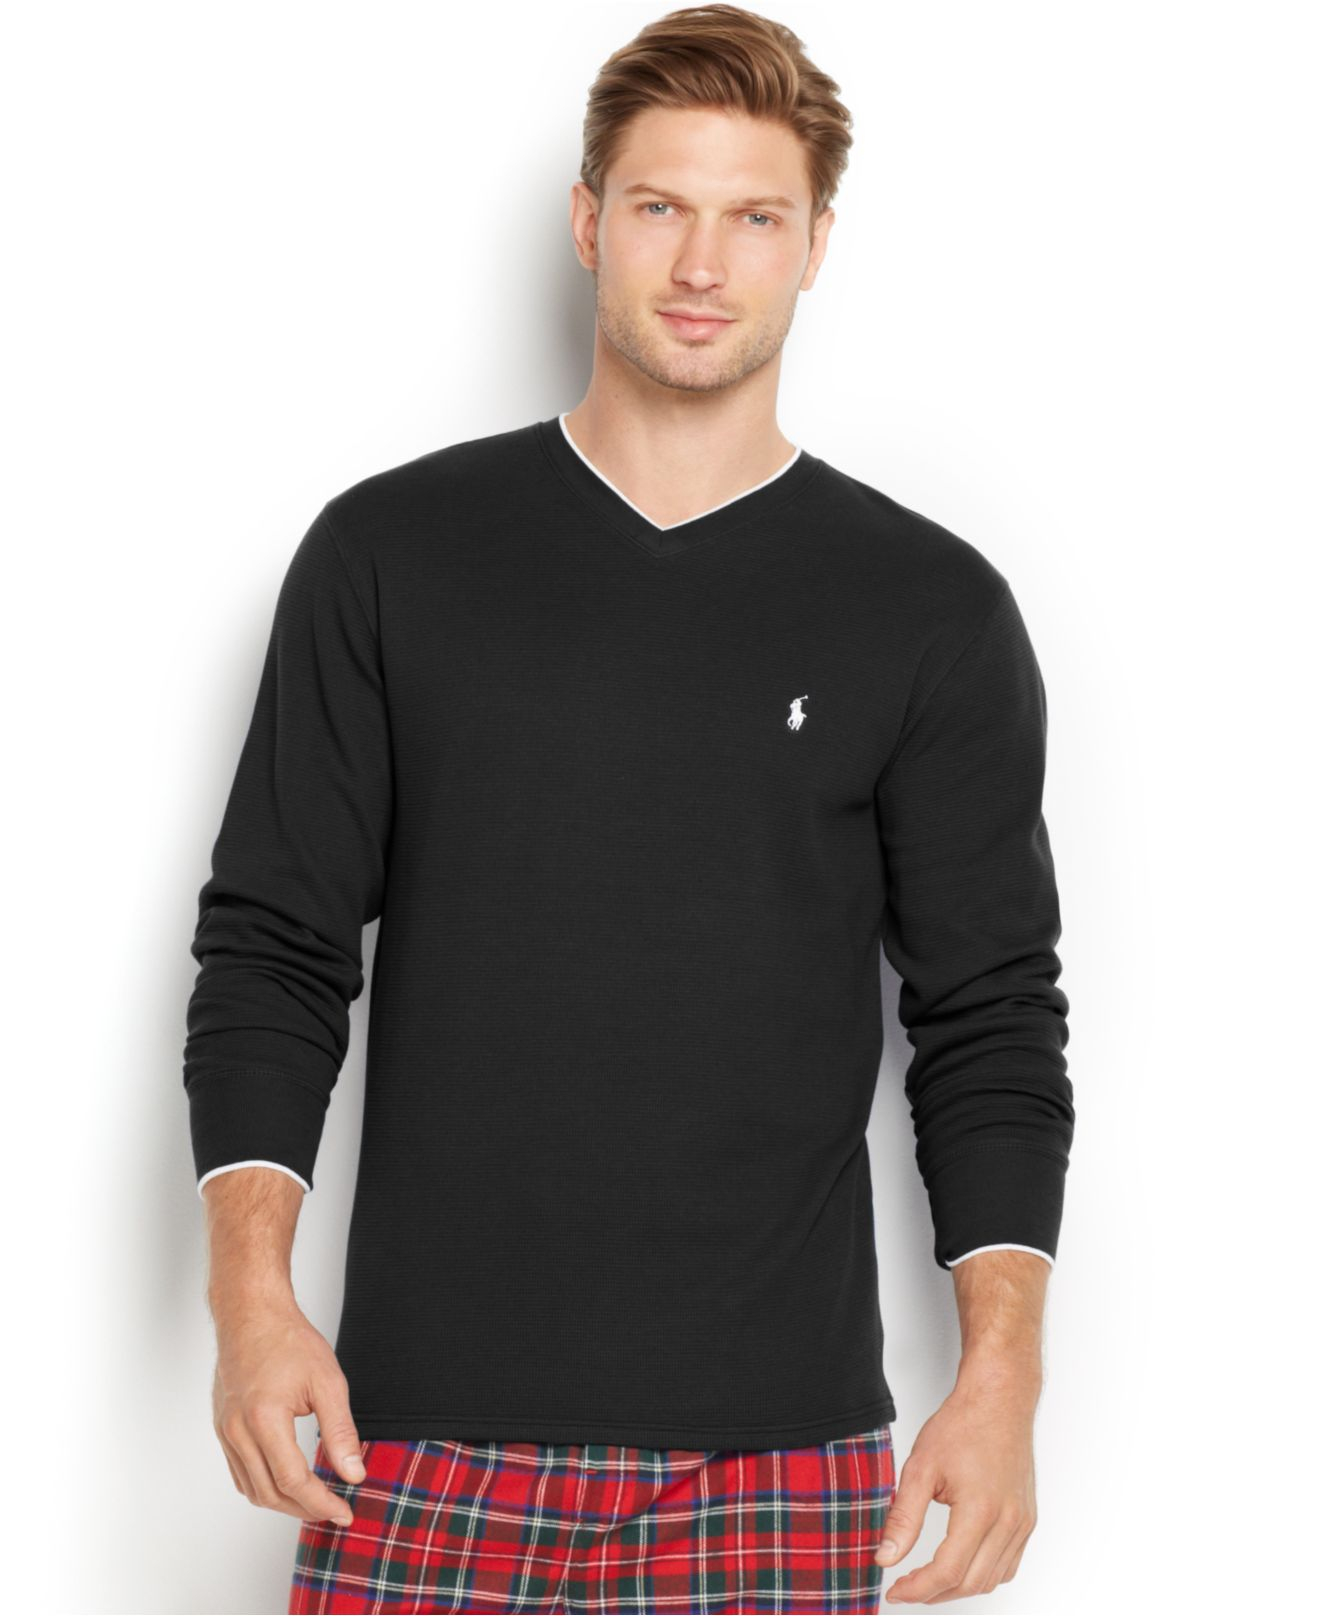 polo ralph lauren men 39 s tipped thermal v neck shirt in black for men lyst. Black Bedroom Furniture Sets. Home Design Ideas